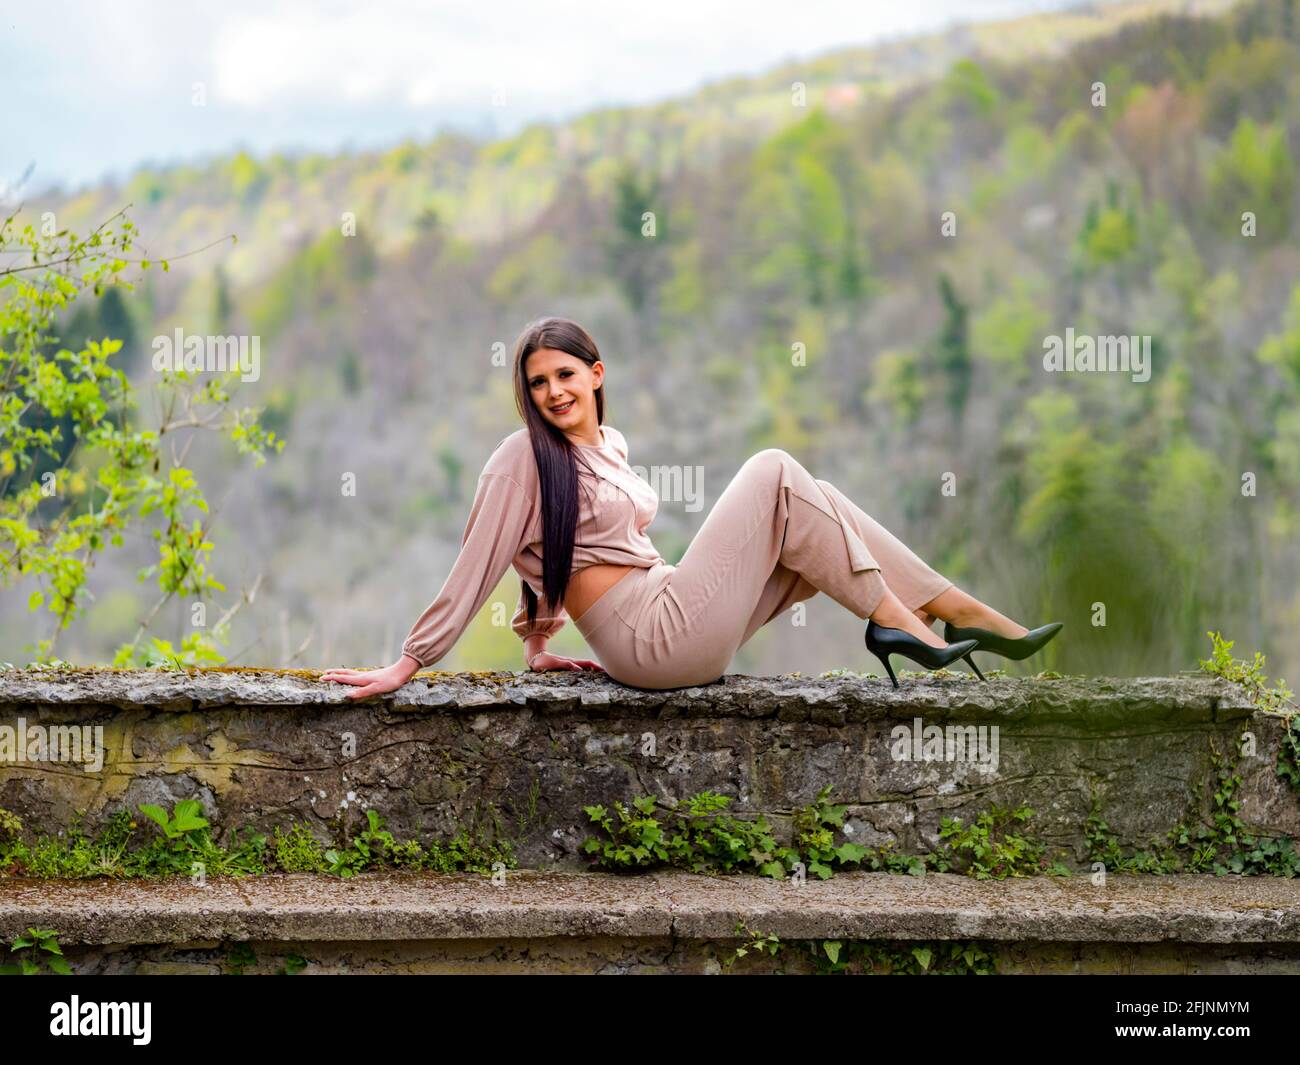 Strike pose on edge of stone wall smiling happy young woman stiletto heels Stock Photo